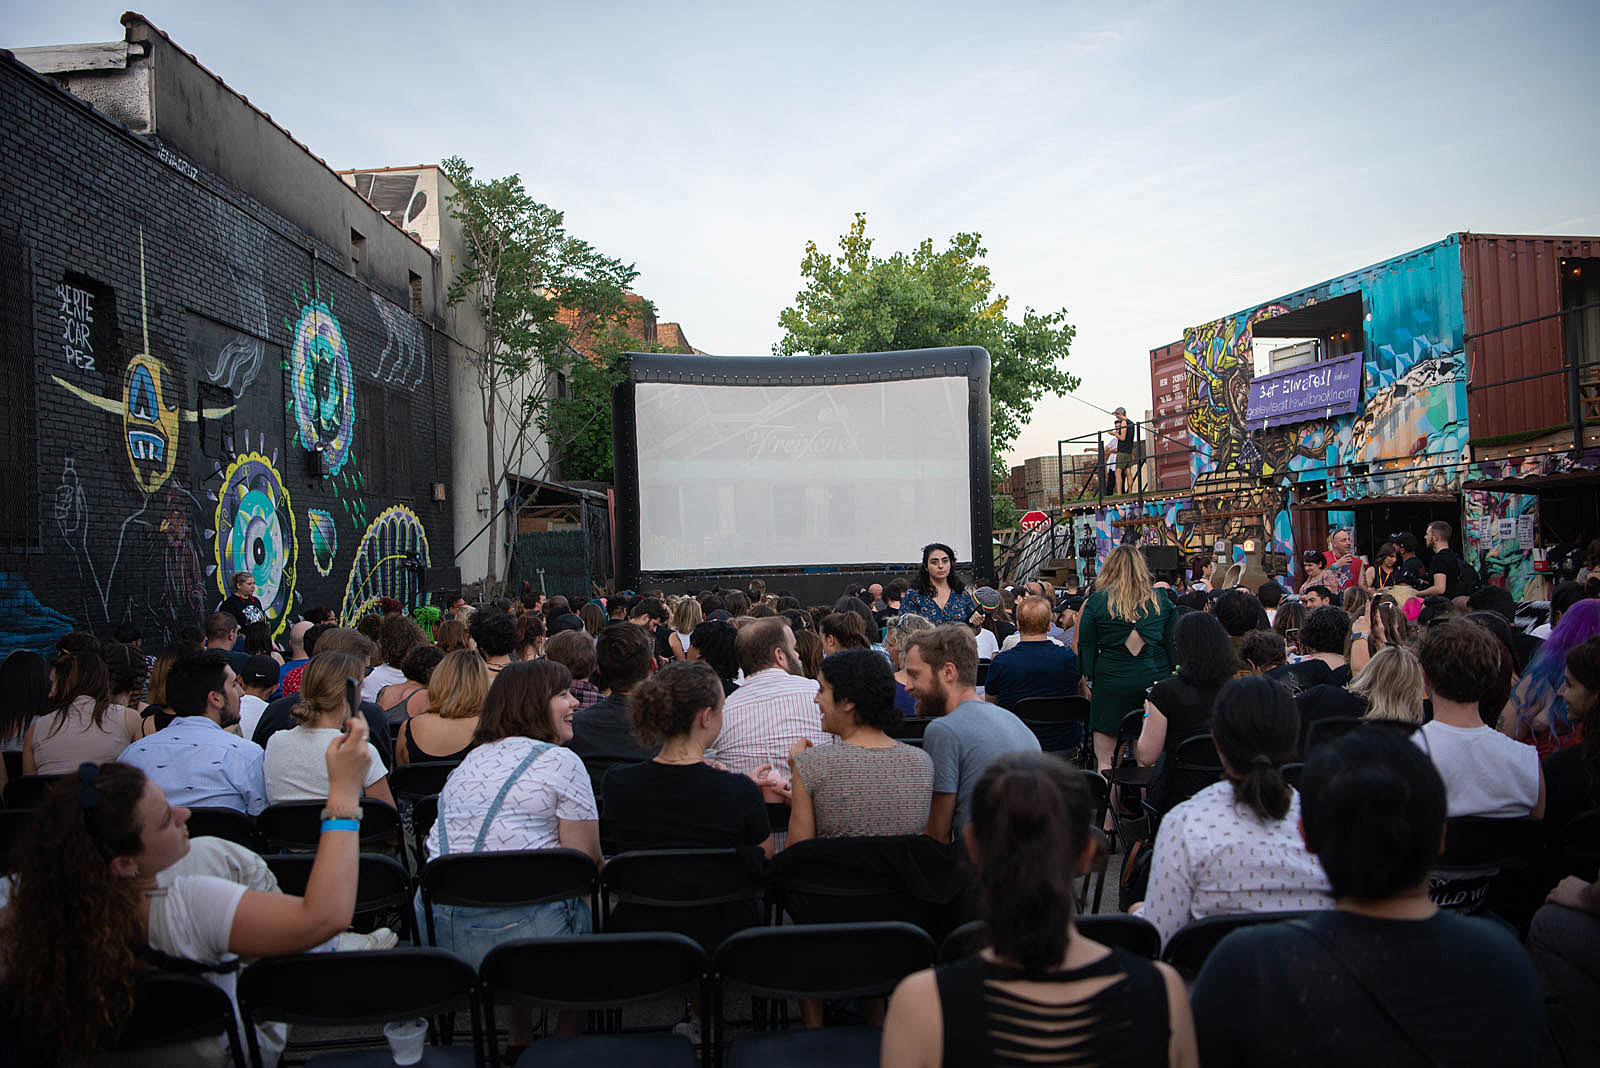 Insane Clown Posse + Rooftop Films screening of 'Family' at The Well